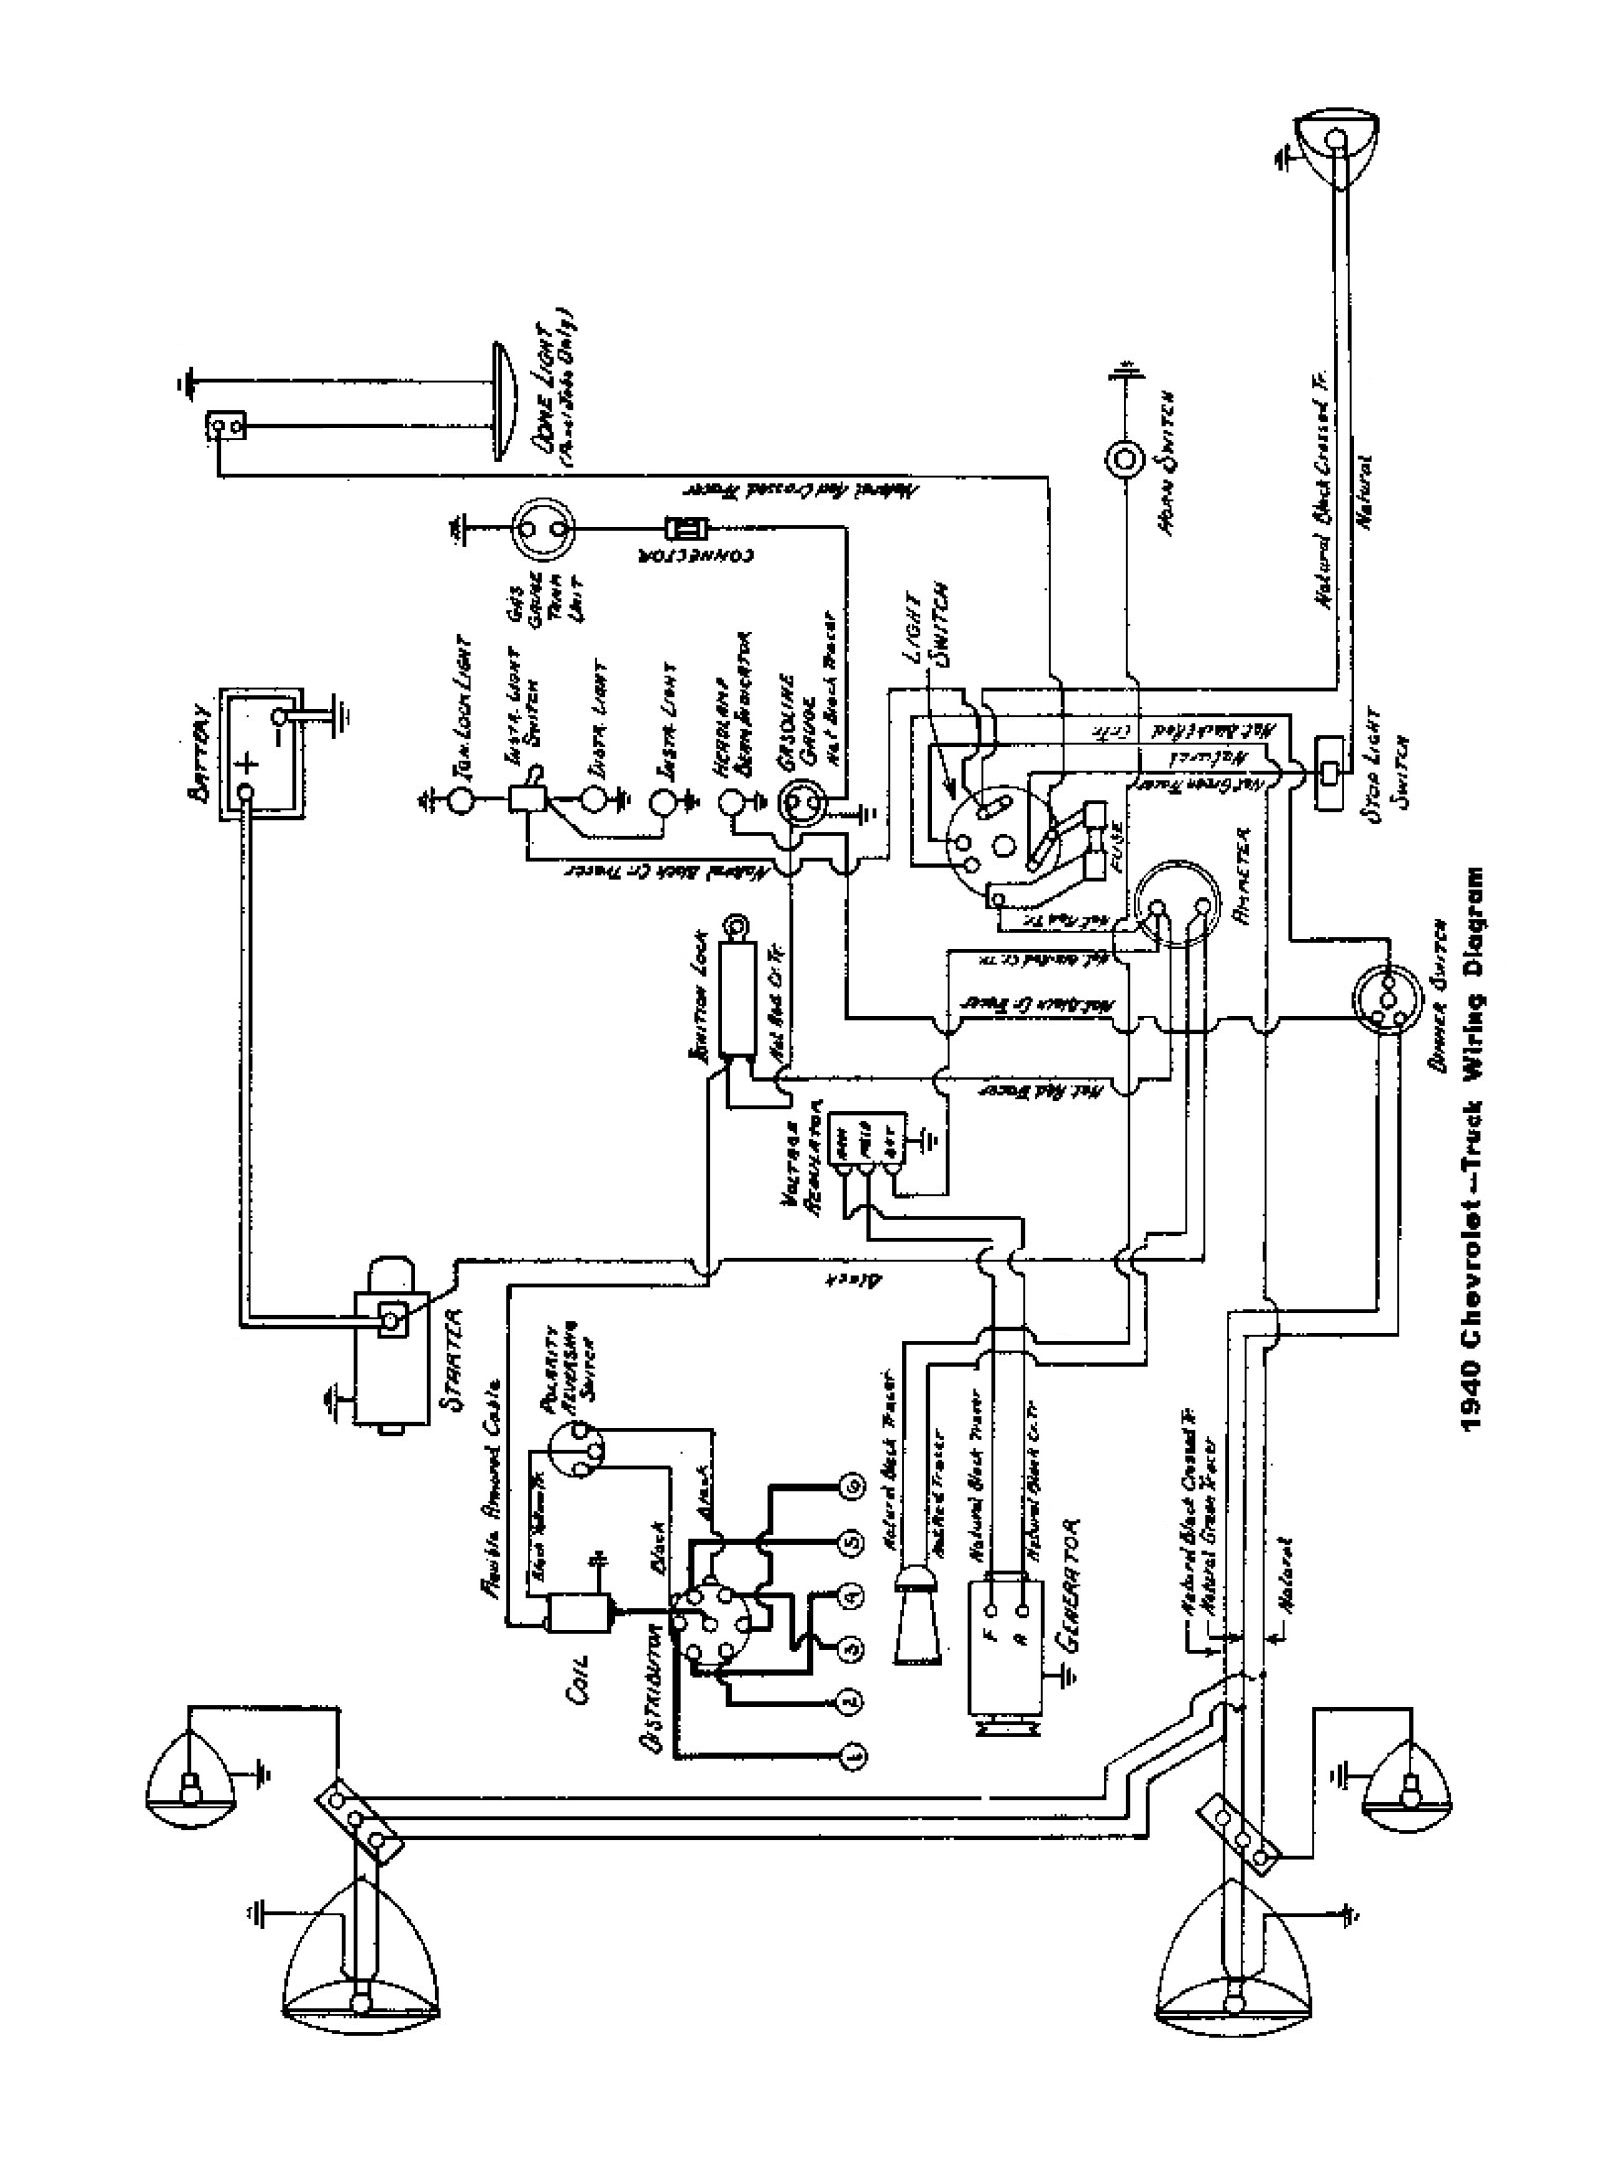 Pleasing Kramer Striker 300St Wiring Diagram Wiring Diagram Wiring 101 Eattedownsetwise Assnl